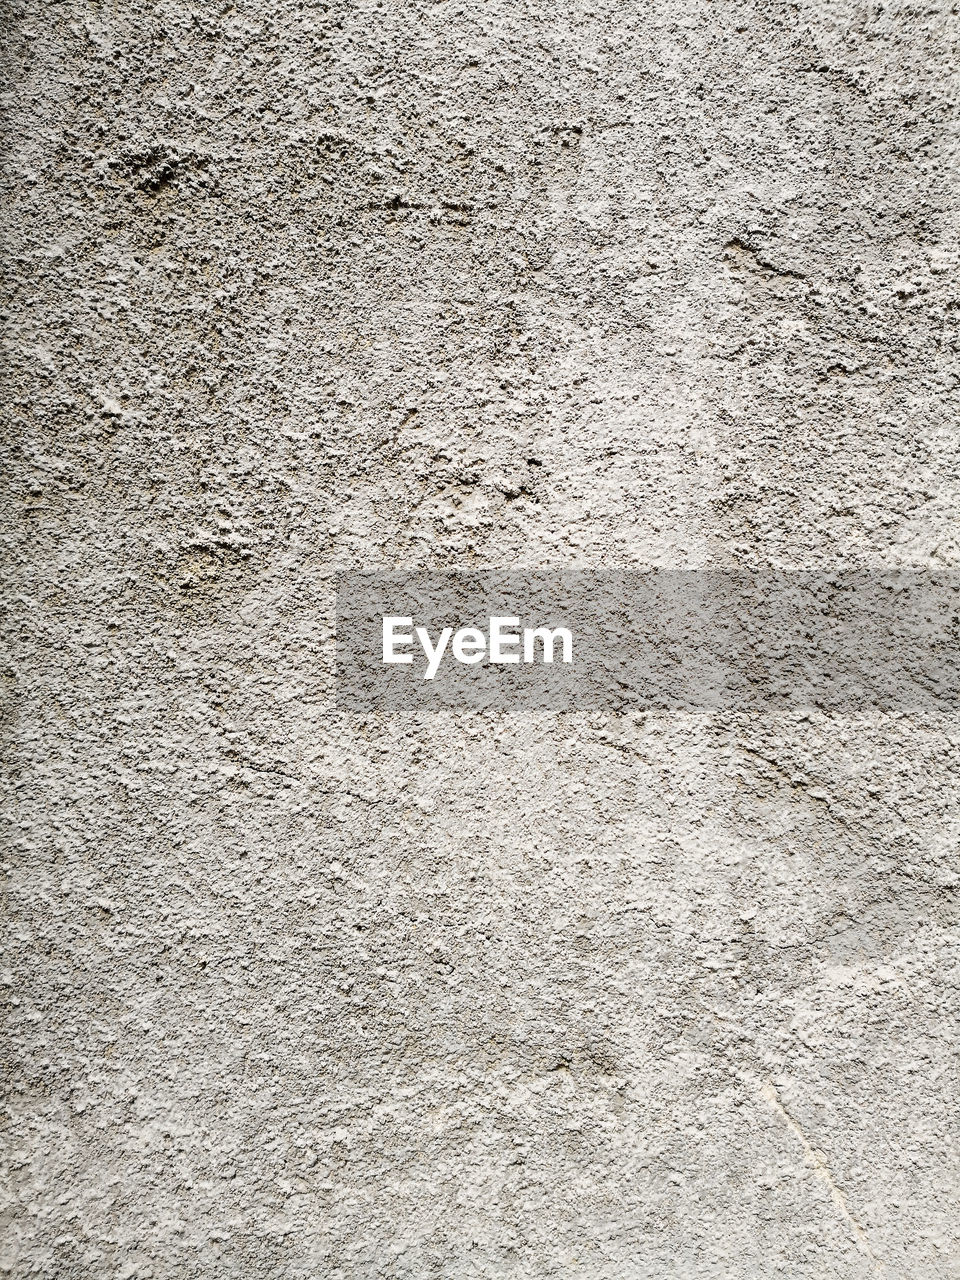 backgrounds, textured, full frame, pattern, rough, wall - building feature, close-up, no people, abstract, built structure, architecture, copy space, gray, concrete, material, wall, concrete wall, flooring, surface level, textured effect, abstract backgrounds, blank, cement